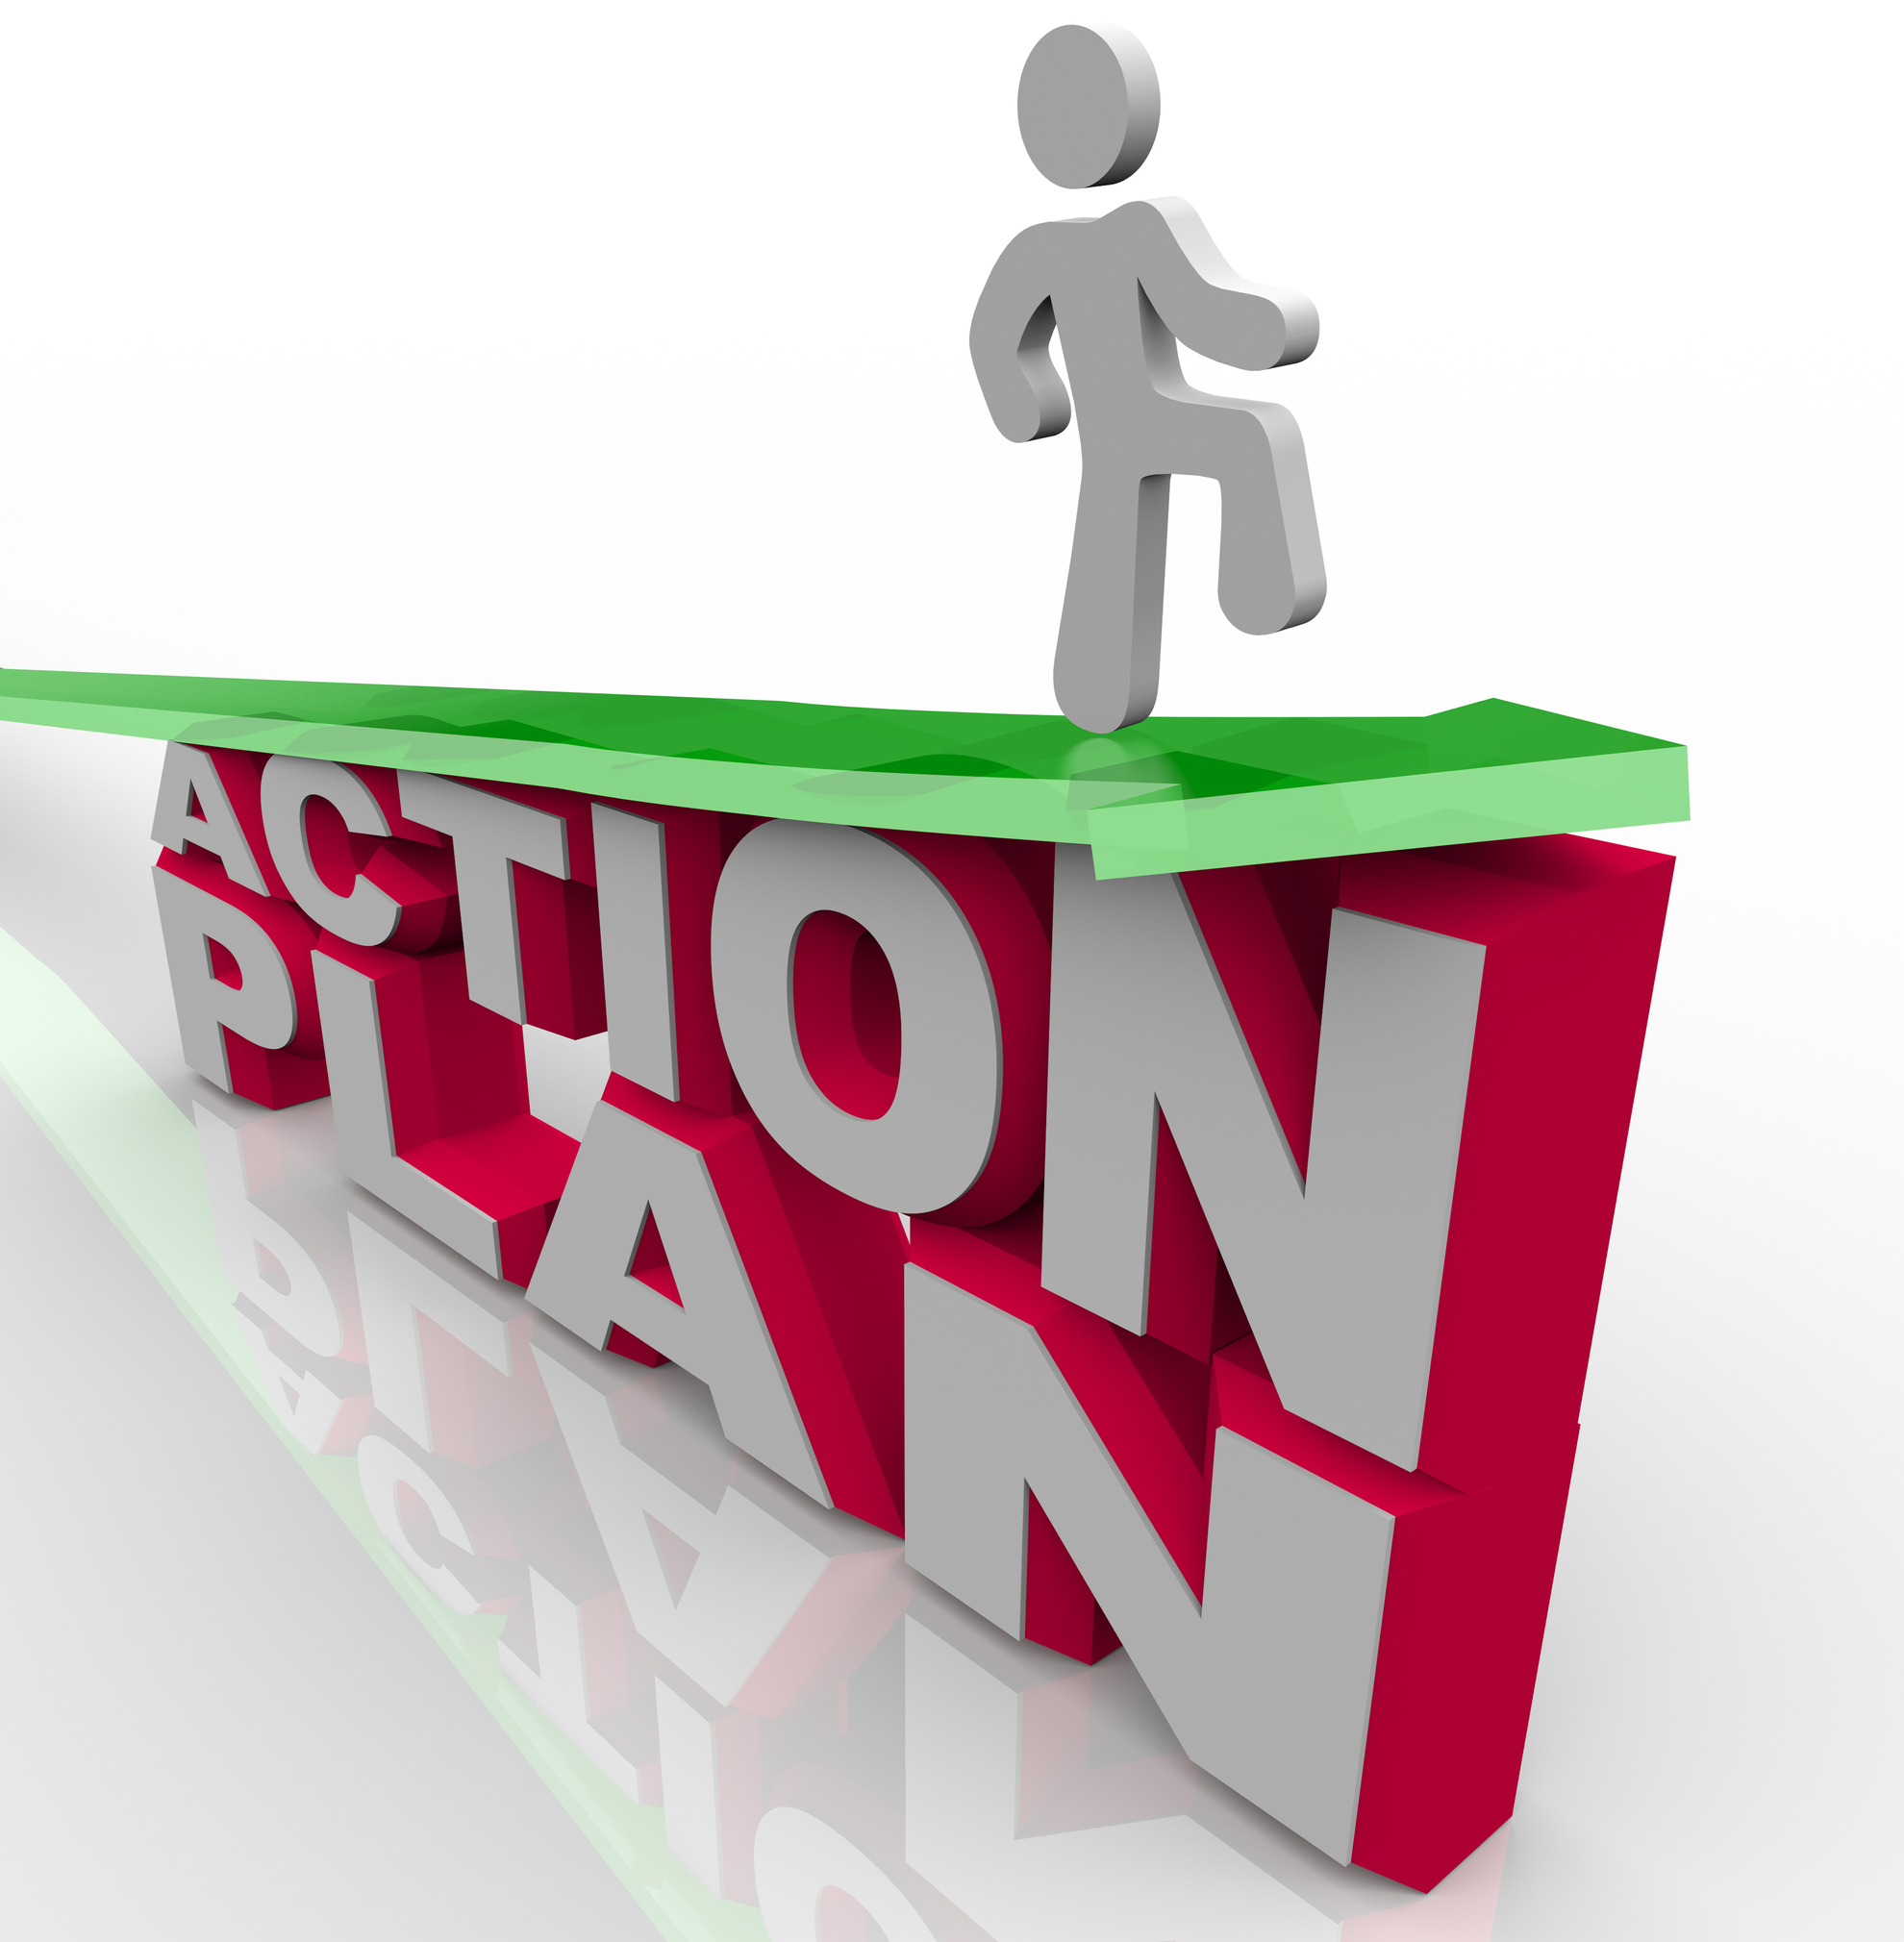 Action cliparts zone . Planning clipart work plan